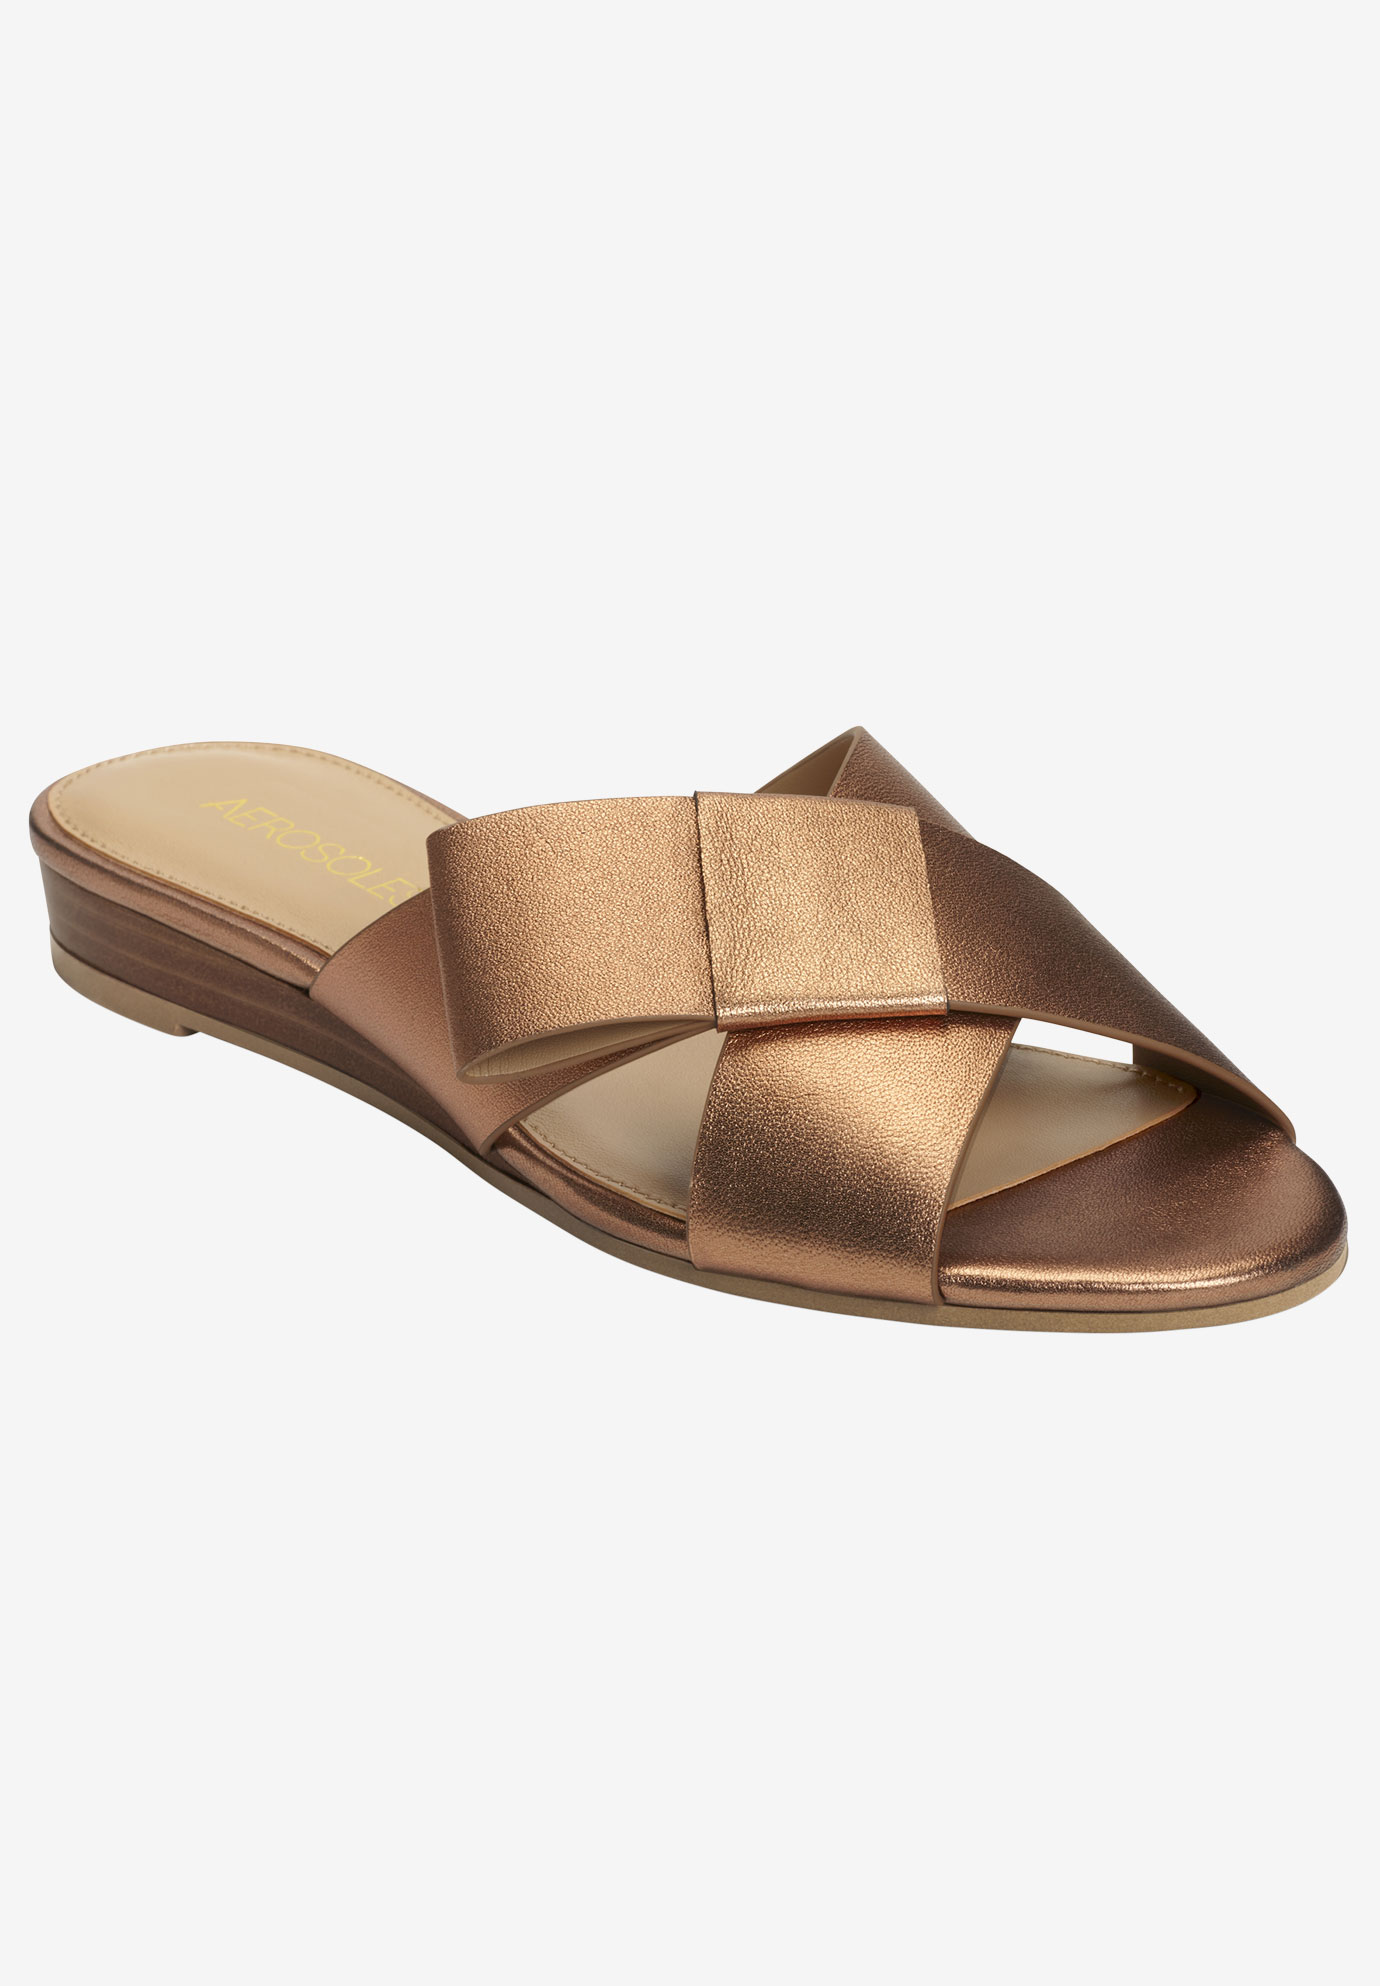 4d4e9cf54 Orbit Sandal by Aerosoles®